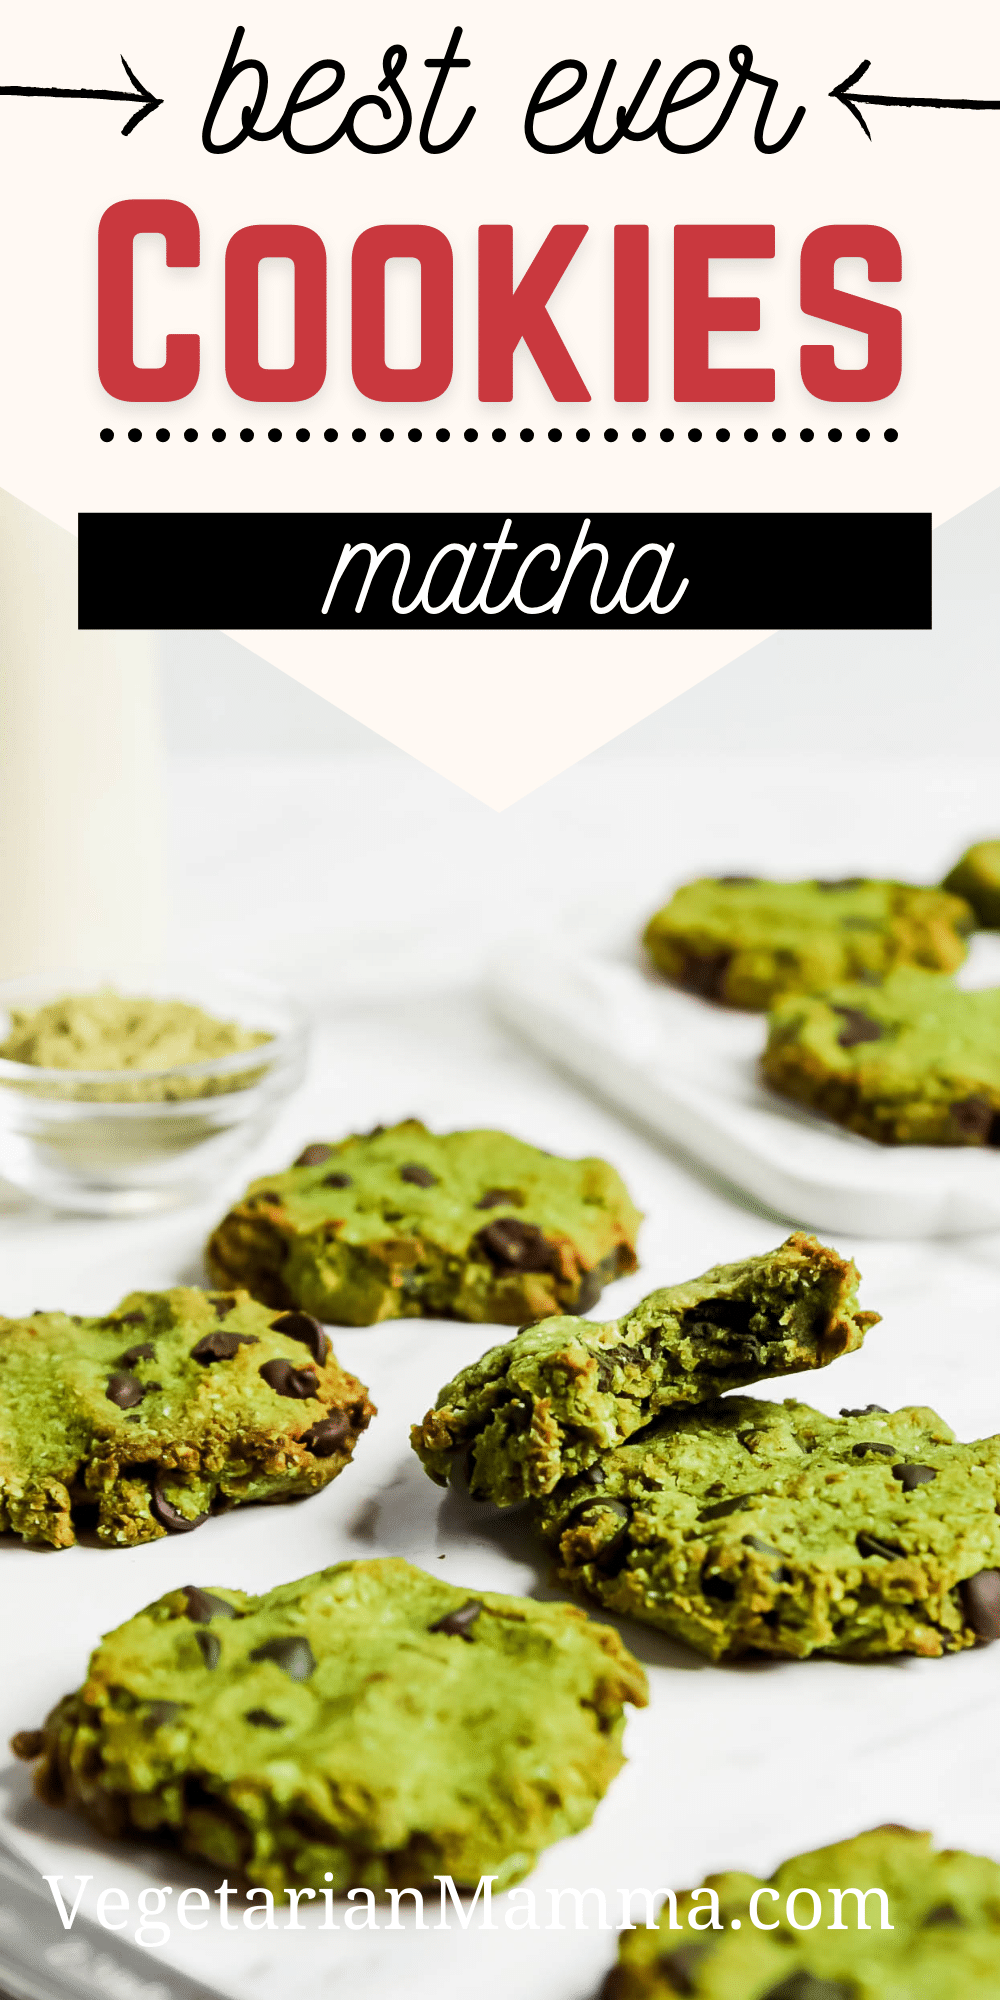 Matcha Chocolate Chip Cookies are packed with earthy green tea flavor and rich chocolate chips. These cookies are gluten free, refined sugar free and totally delicious. #cookies #matcha